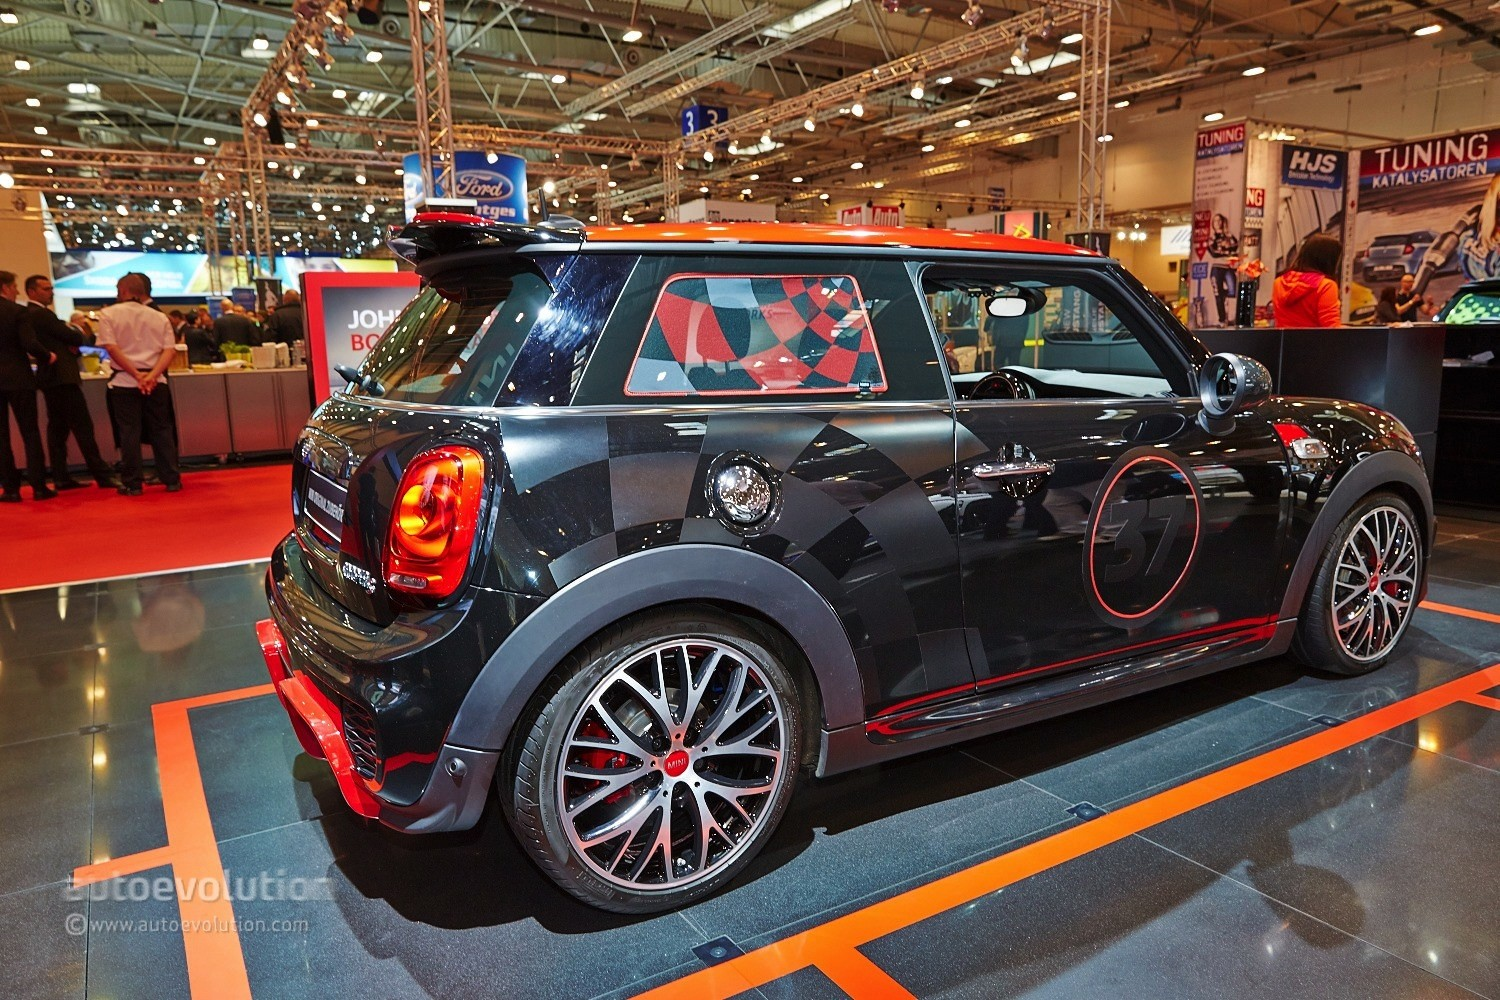 2015 mini cooper s gets 211 hp with jcw tuning kit at. Black Bedroom Furniture Sets. Home Design Ideas